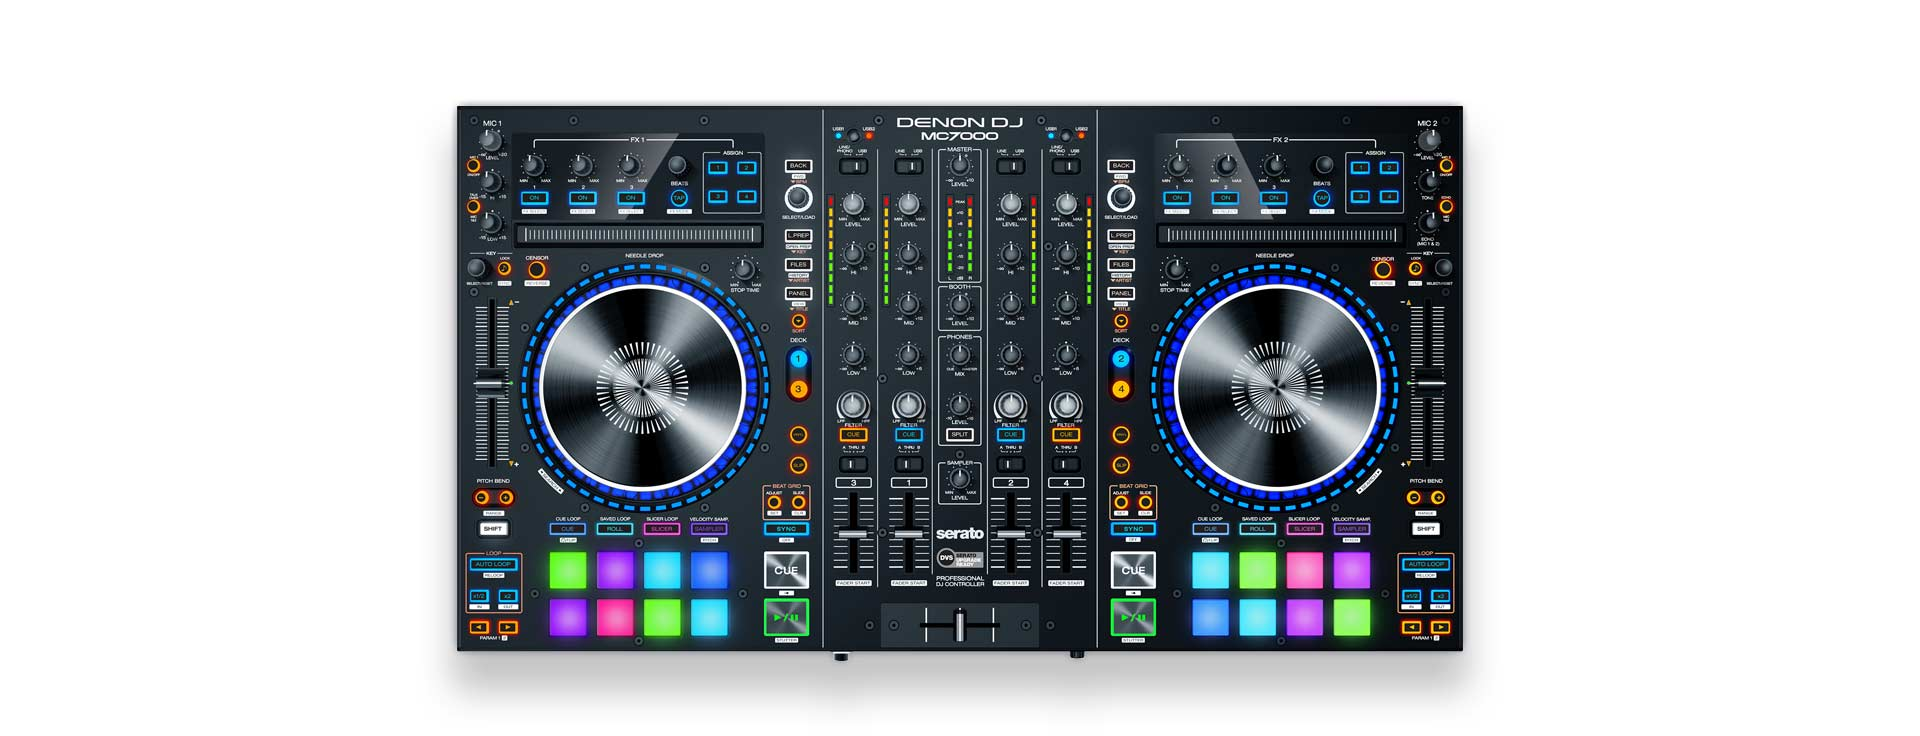 DENON DJ MC2000 ASIO WINDOWS DRIVER DOWNLOAD